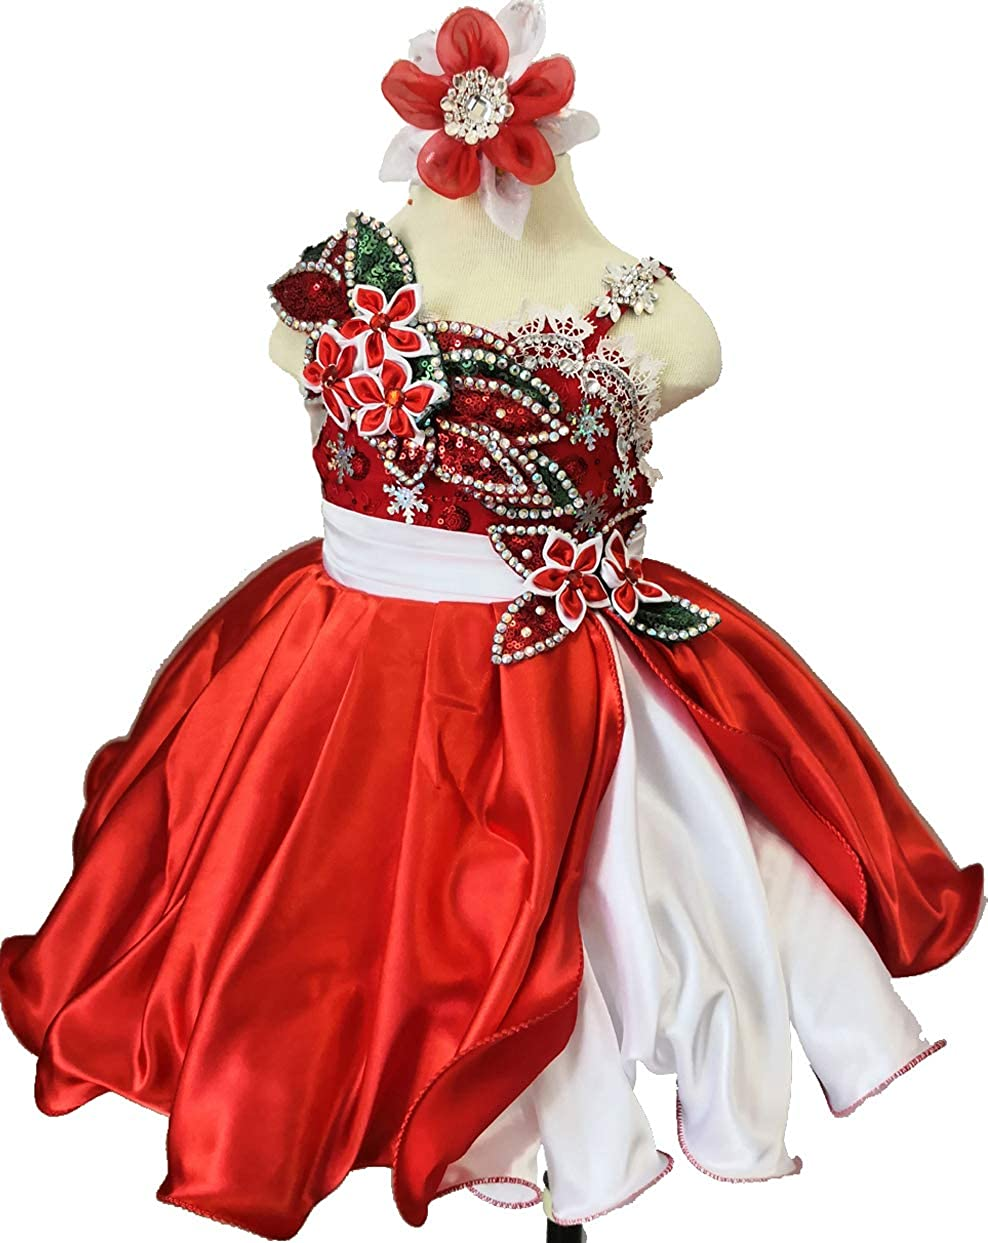 Jennifer G221A Design Christmas Toddler Baby Newborn Little Girl's Pageant Party Birthday Dress RED Size 12-18M